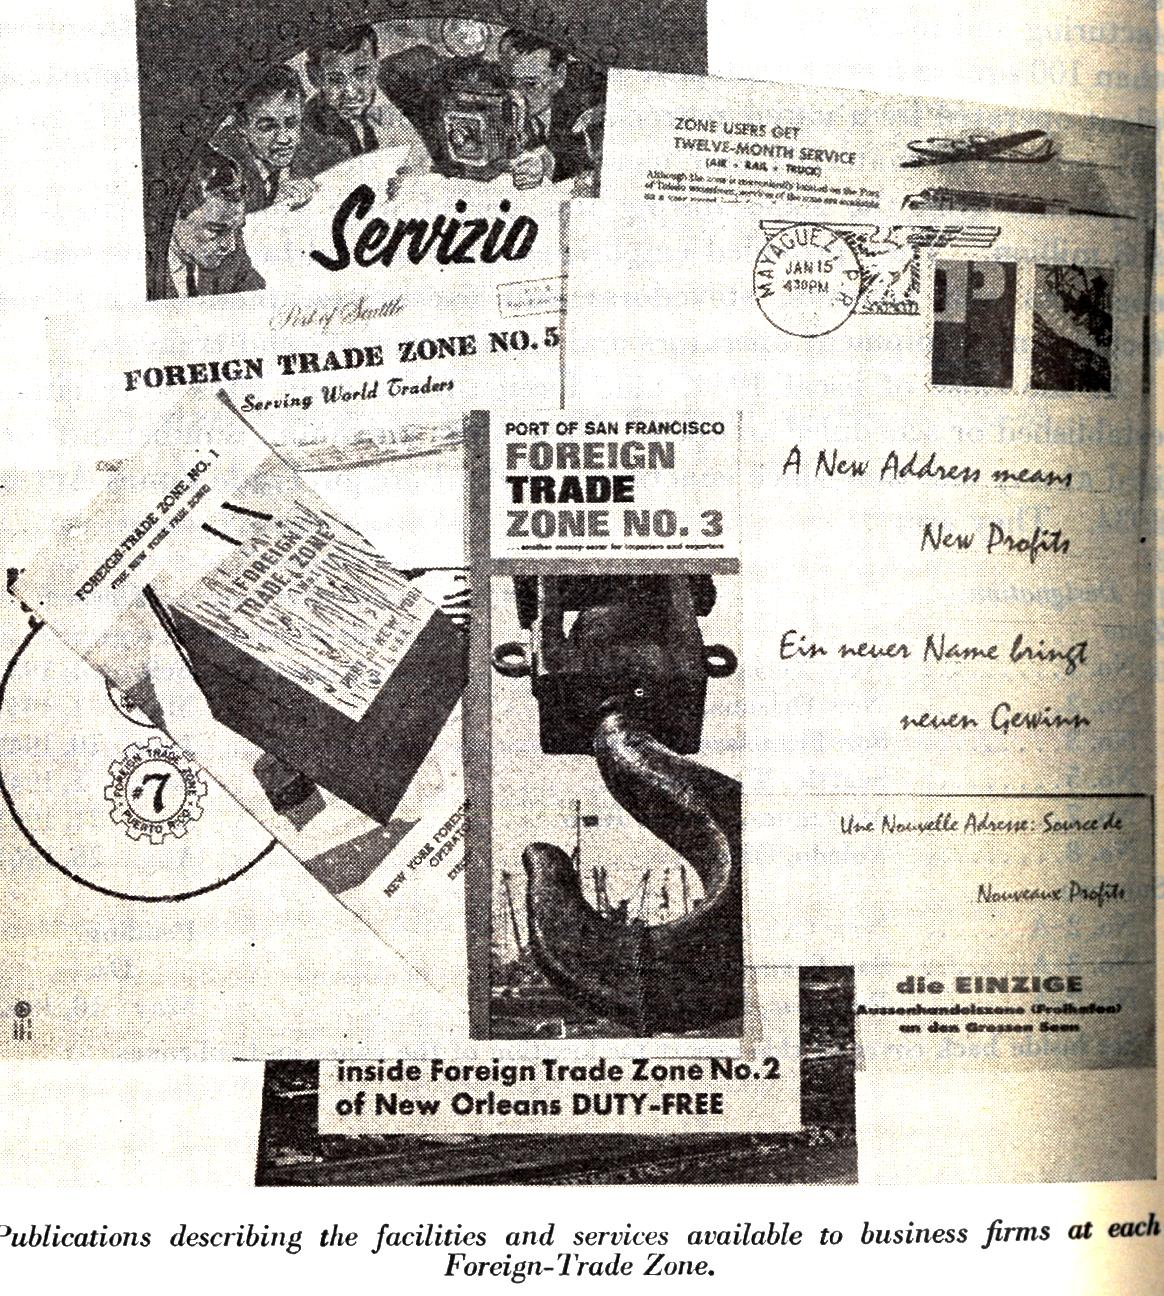 Foreign Trade-Zones: 75 Years of History